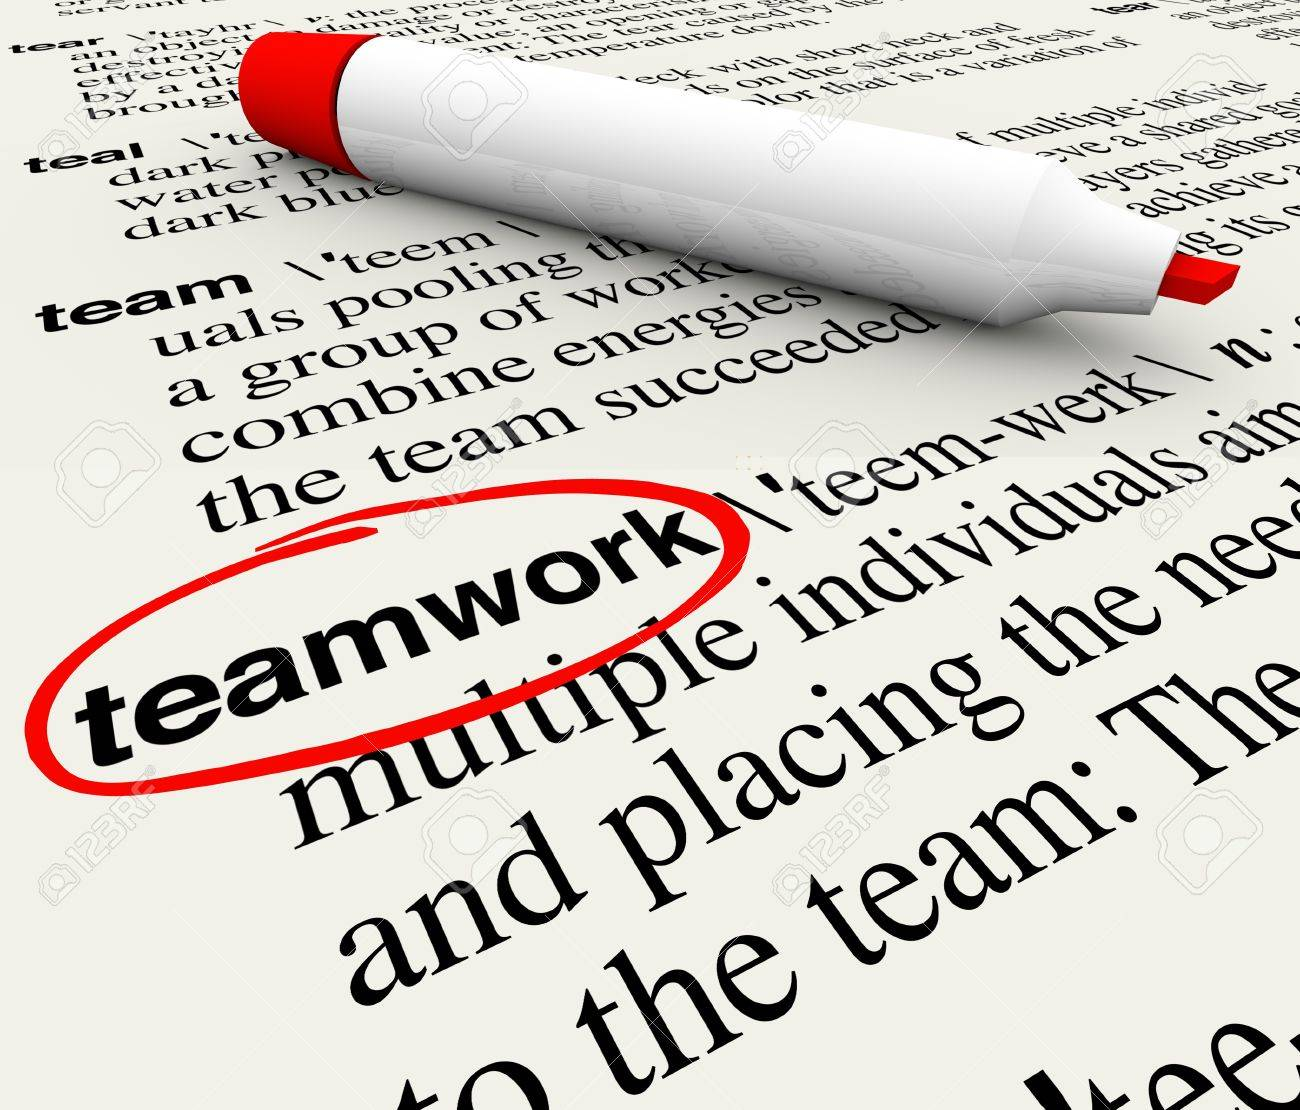 a dictionary page the word teamwork circled to give meaning a dictionary page the word teamwork circled to give meaning to the concept of working